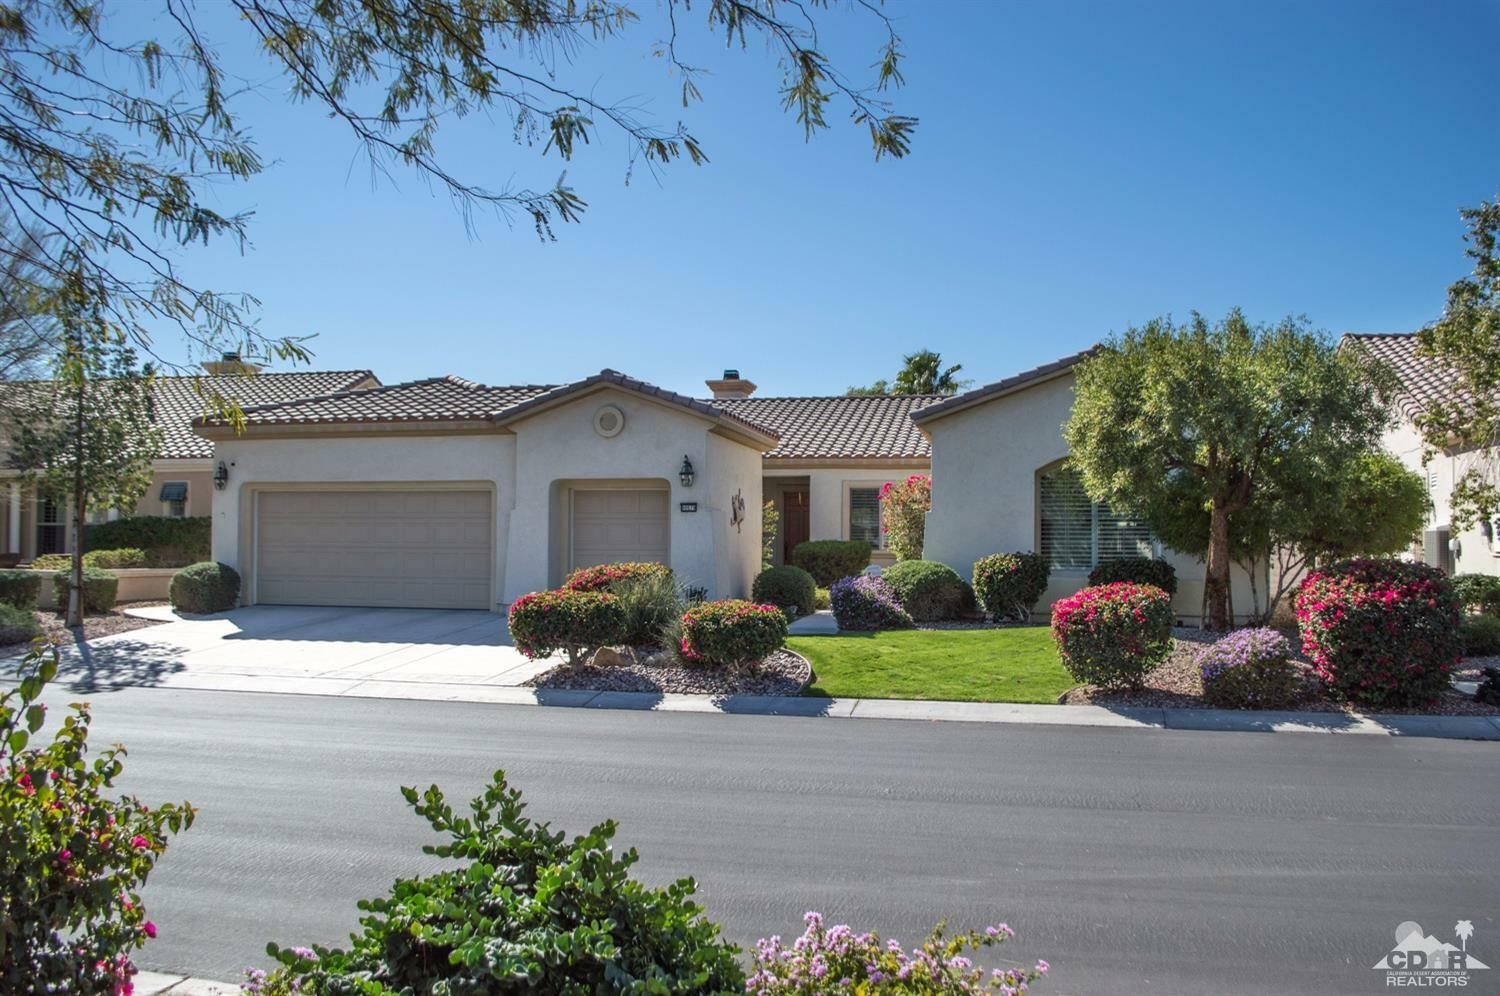 80679 Camino Santa Elise, Indio, CA - USA (photo 1)